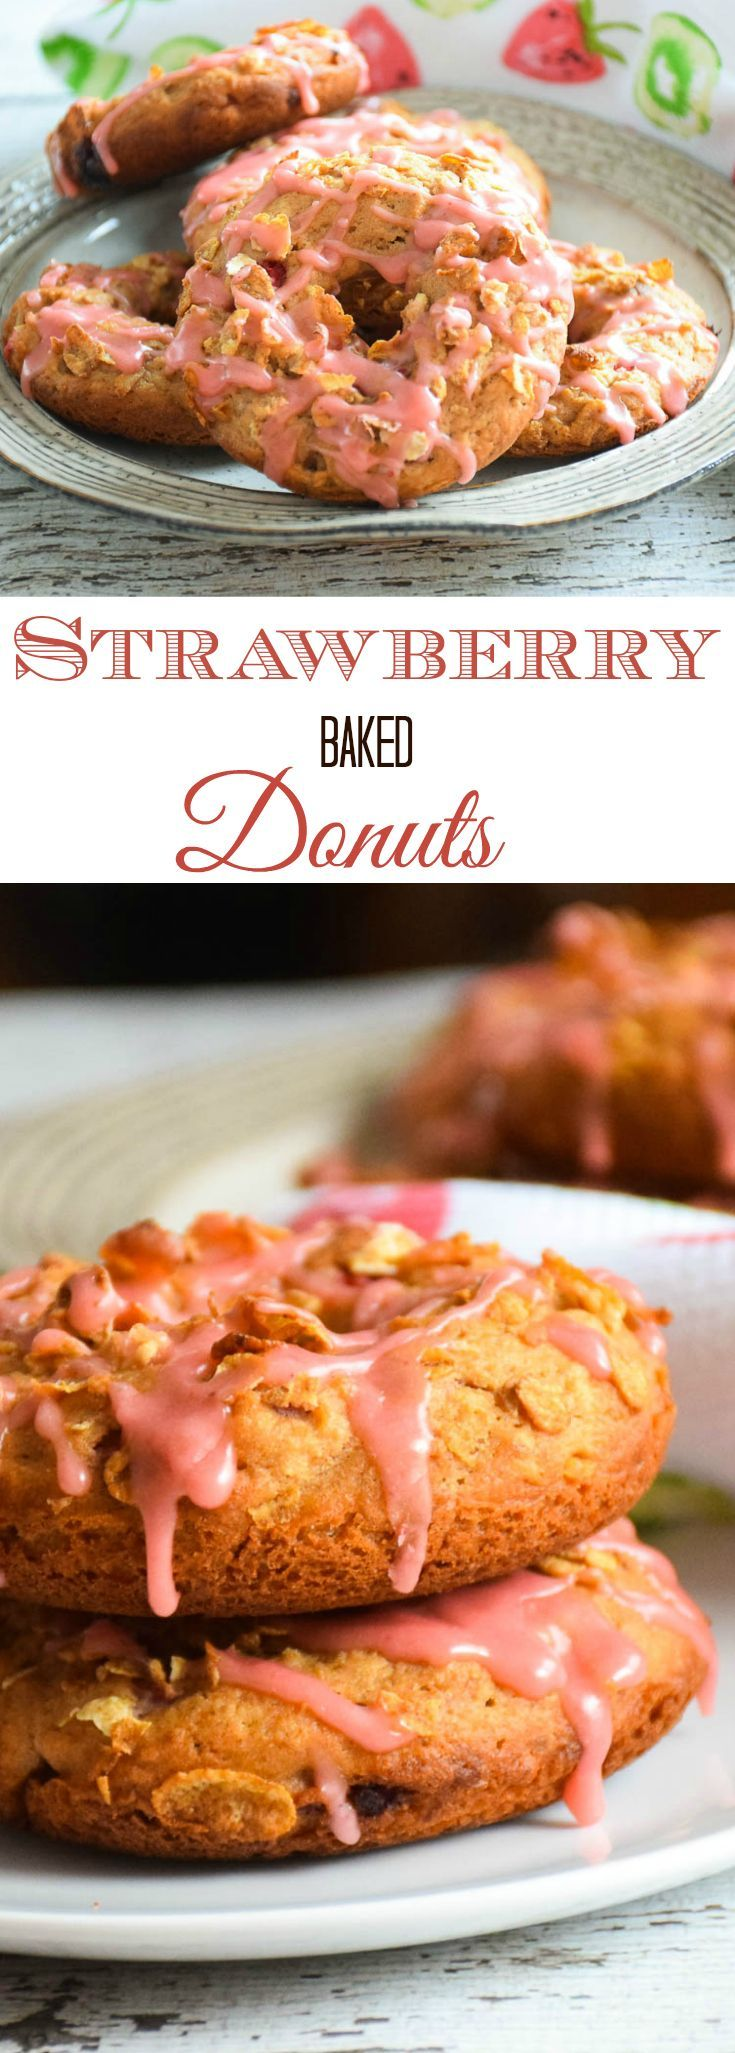 Strawberry Baked Donuts are a muffin recipe made in a donut shape and topped with cereal topping then drizzled with a fresh strawberry glaze! Made with @GreatGrains Crunch Pecan Cereal for your #spoonfulofgoodness #sponsored https://ooh.li/c72290a